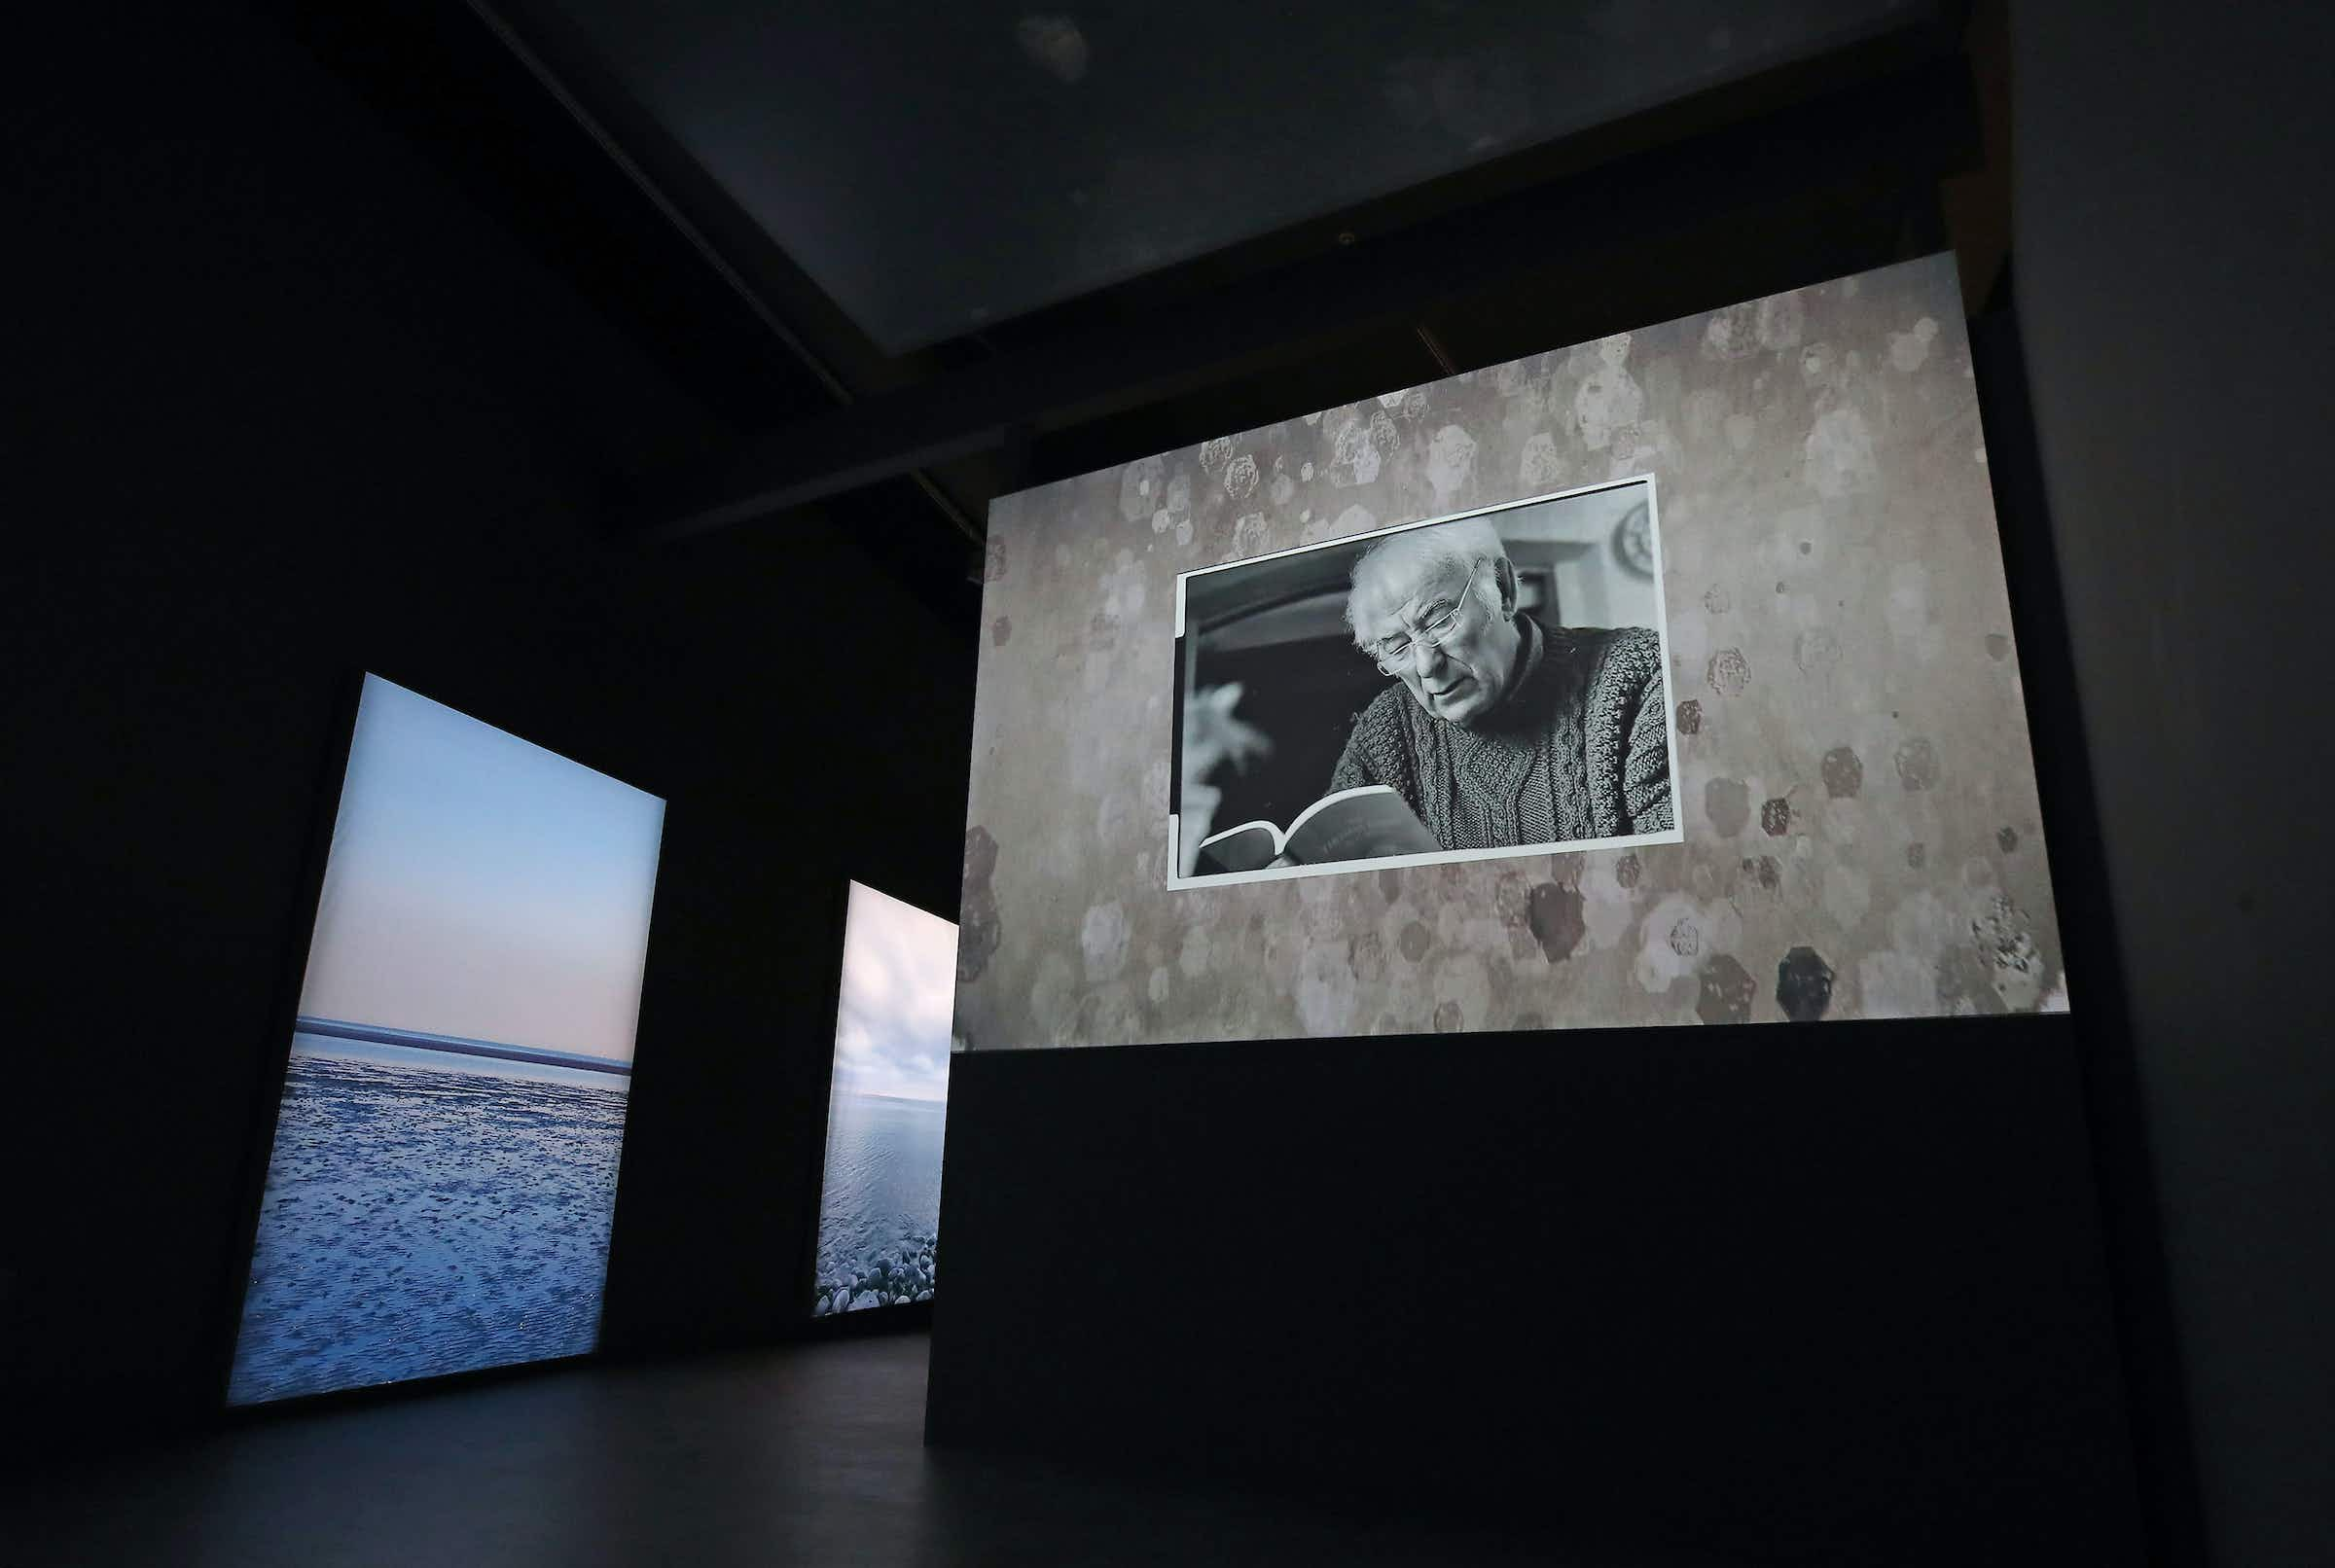 A new exhibition in Dublin celebrates the life and work of poet Seamus Heaney